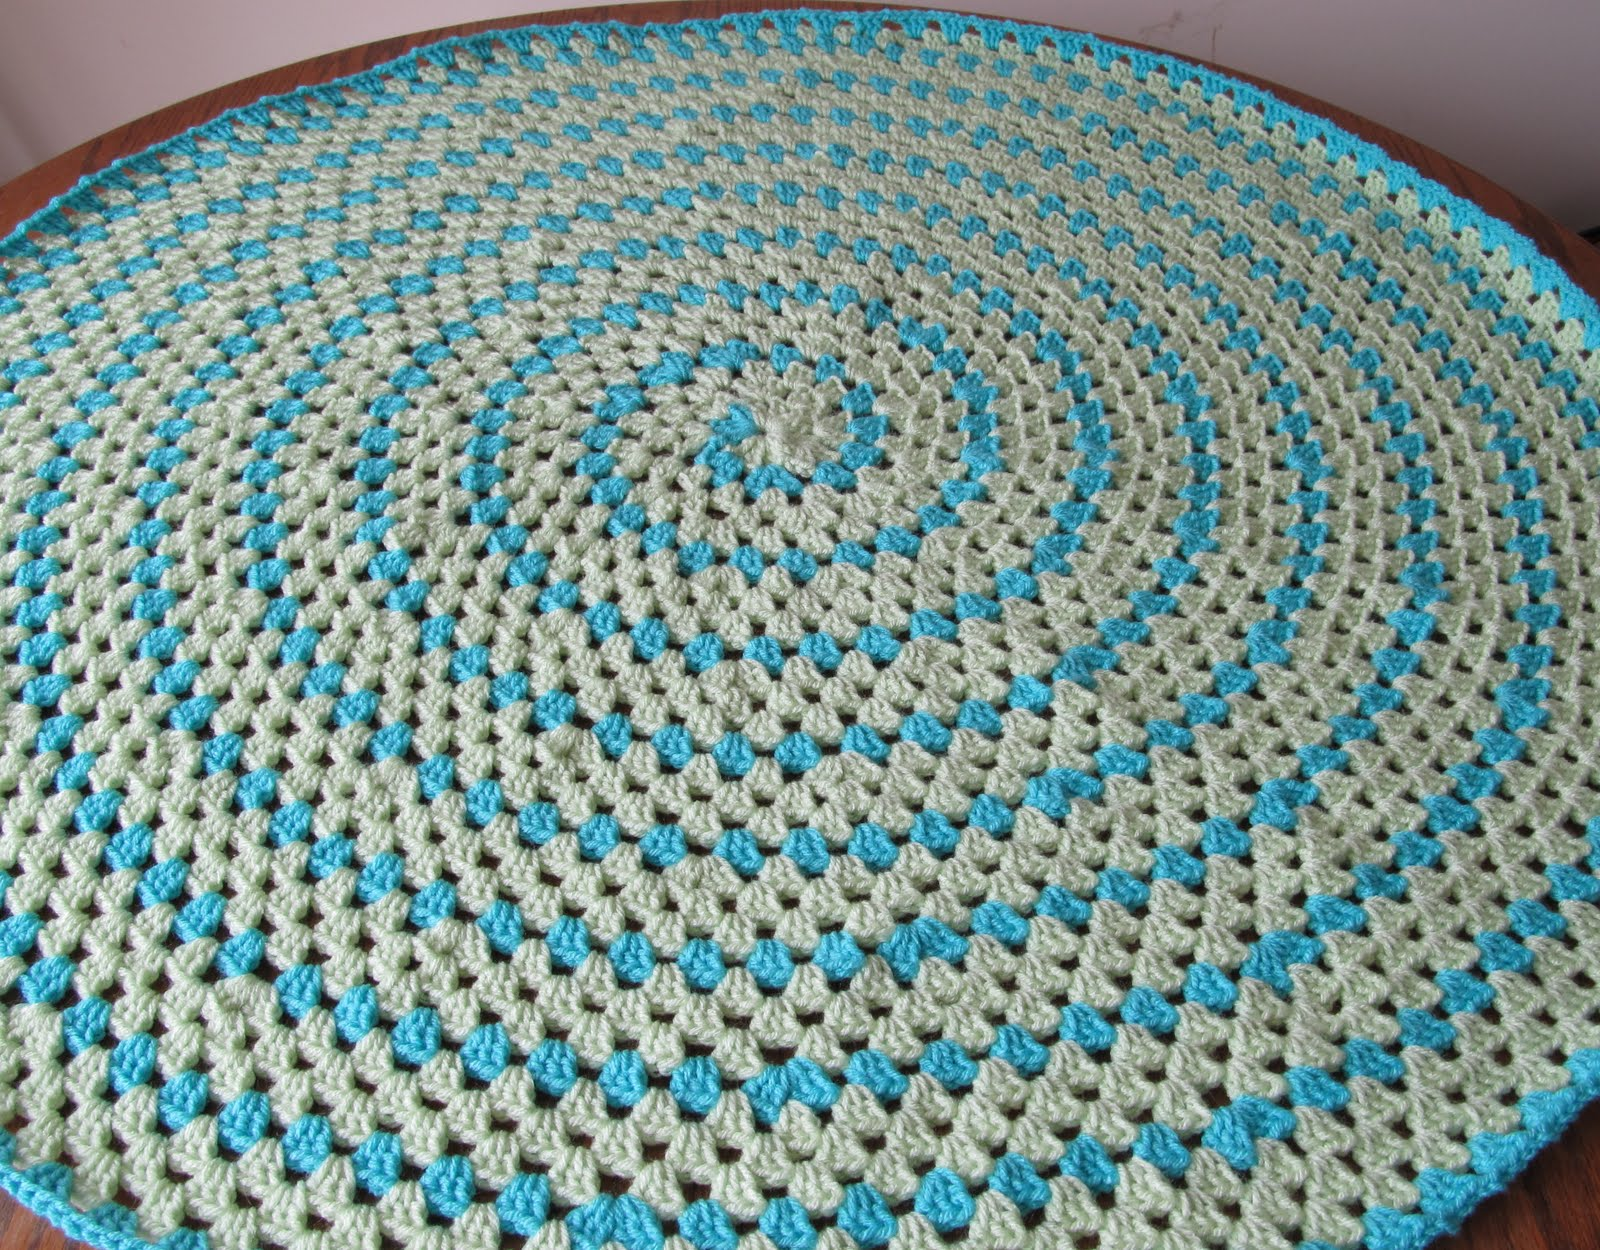 Crochet In A Circle : SmoothFox Crochet and Knit: Testers Found - Spiral Round Granny ...